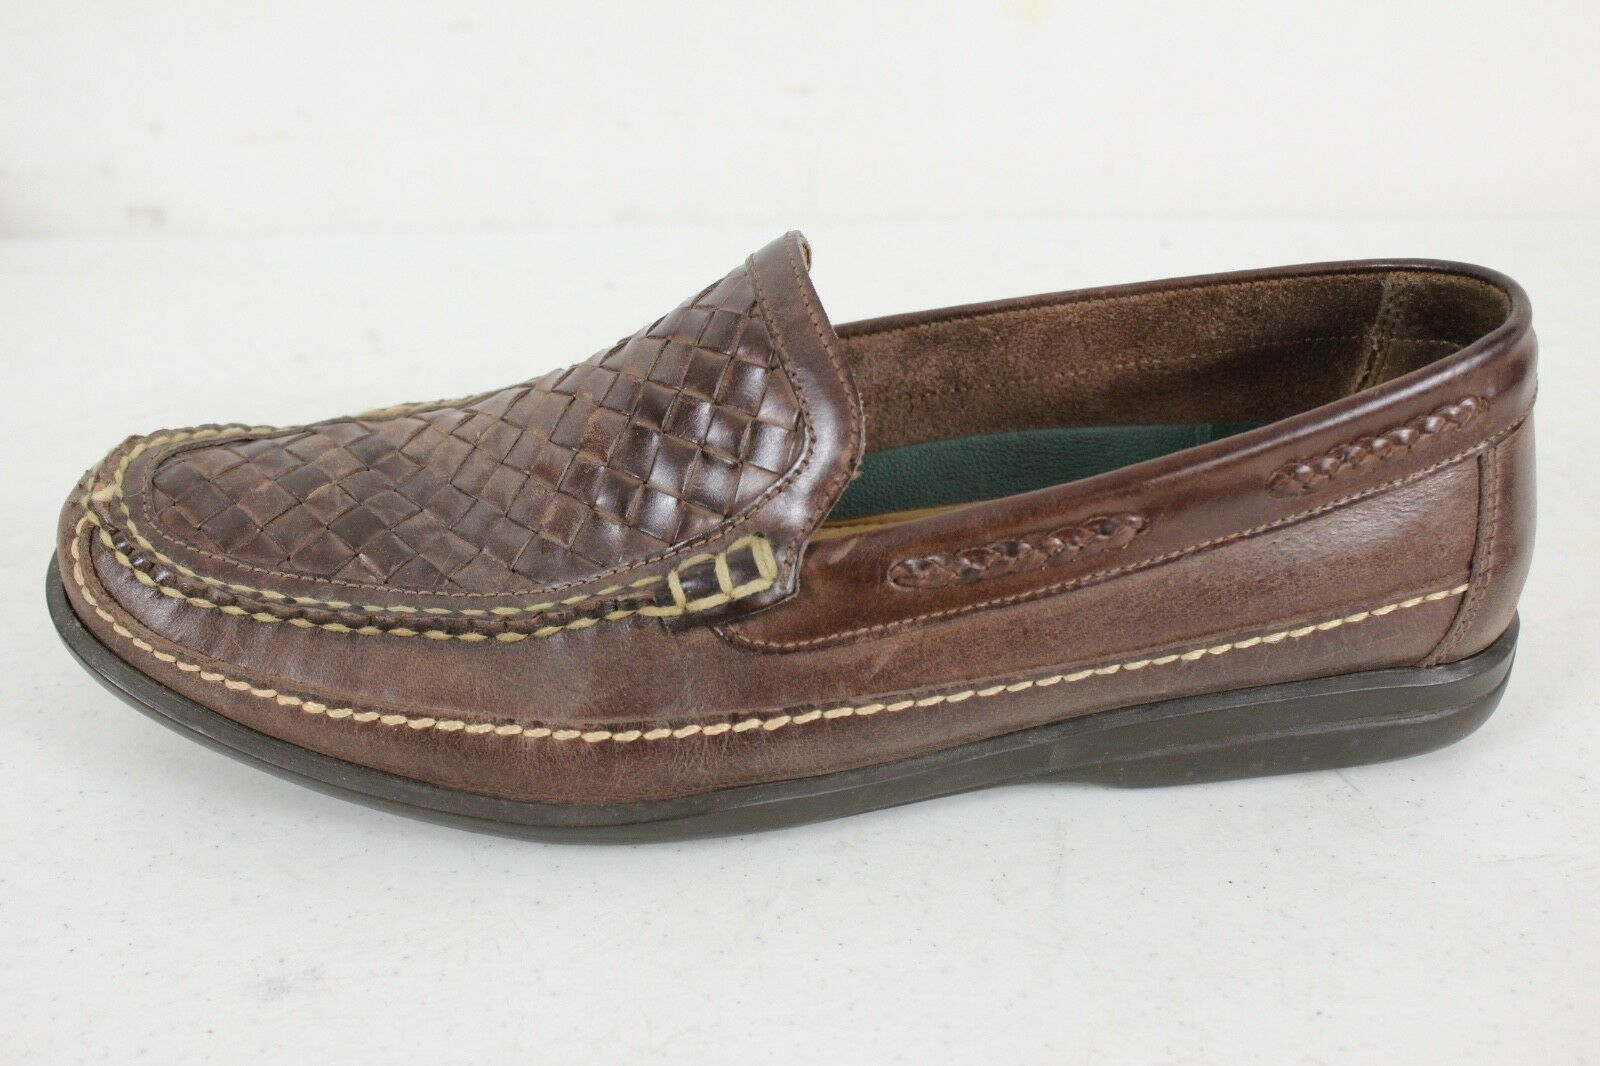 Men's Johnston & Murphy Dress Loafer Brown Weave Leather 10 M